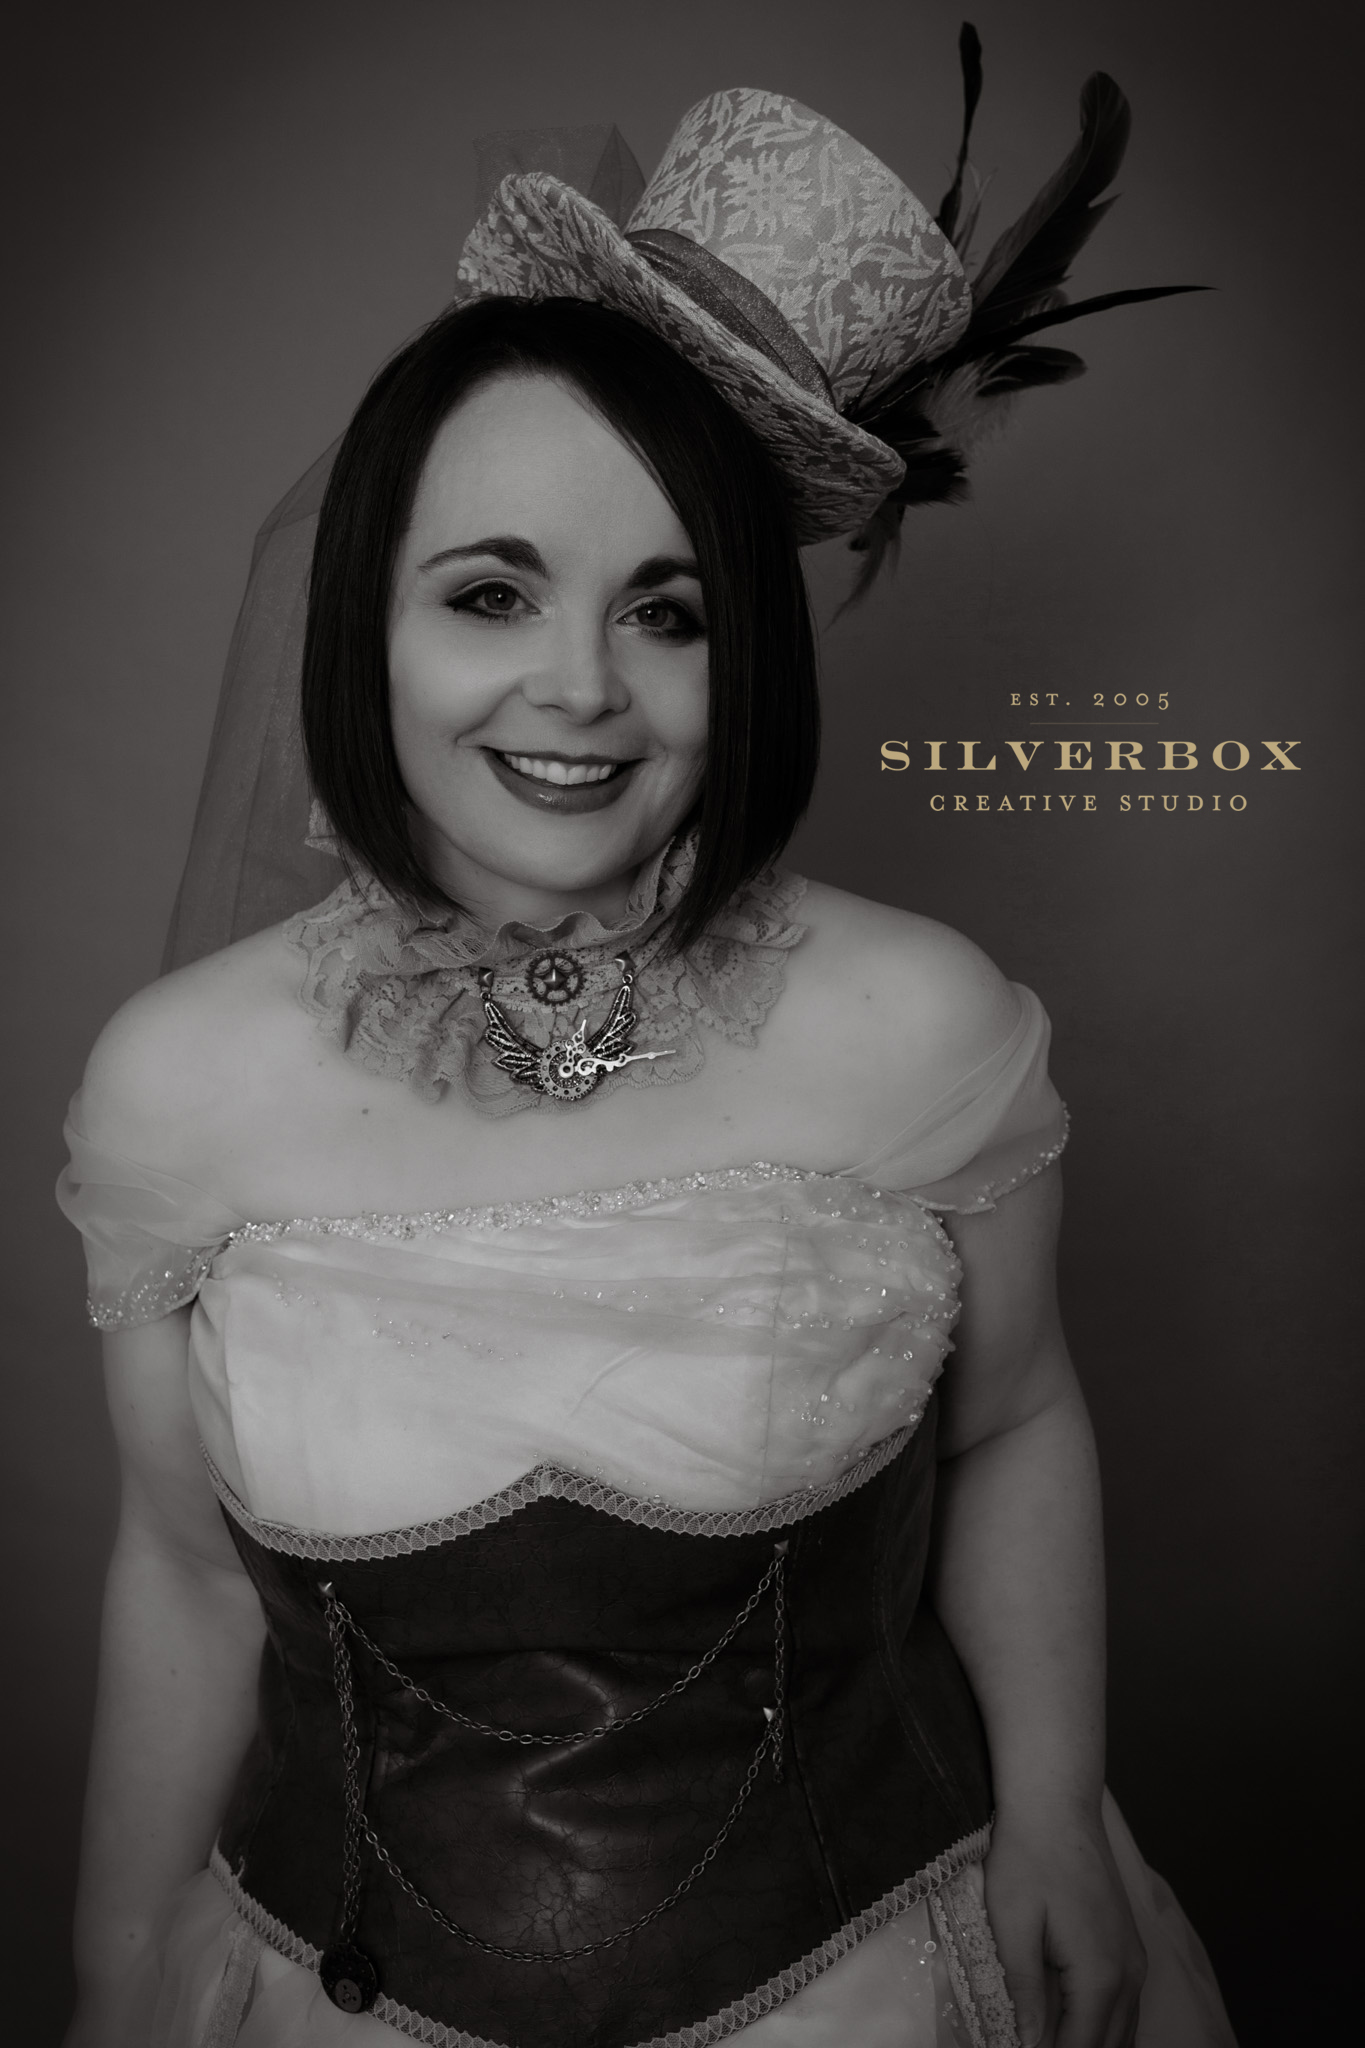 Silverbox Creative The Steampunk Project